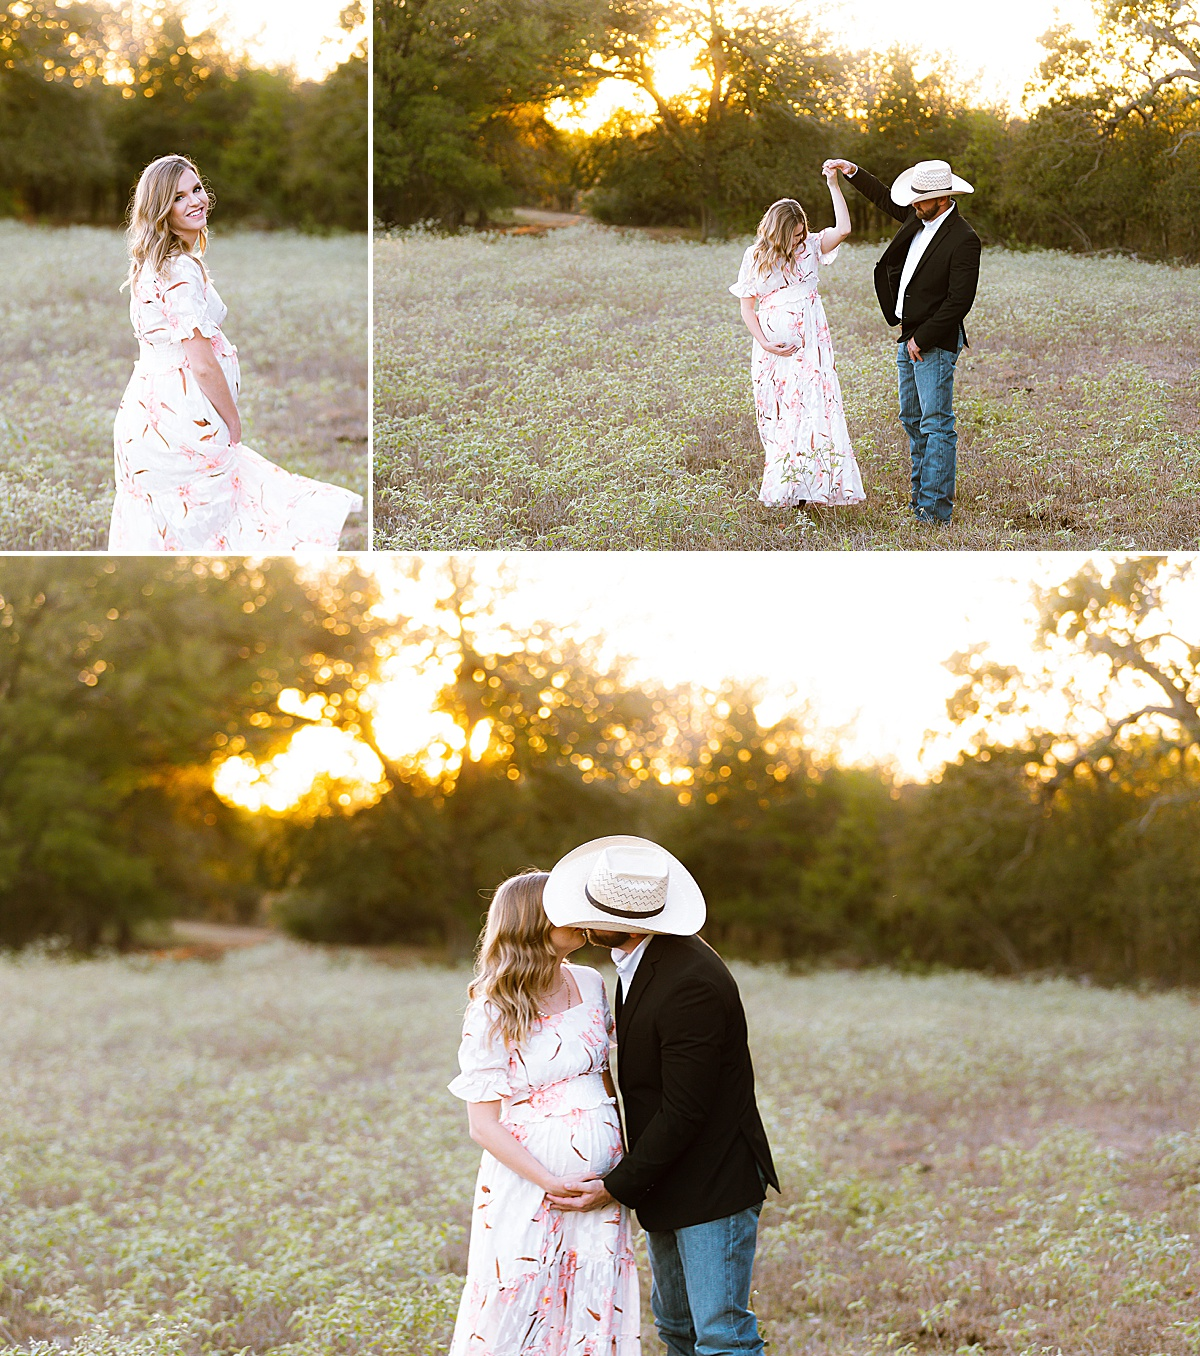 maternity-photo-session-lavernia-texas-carly-barton-photography_0018.jpg